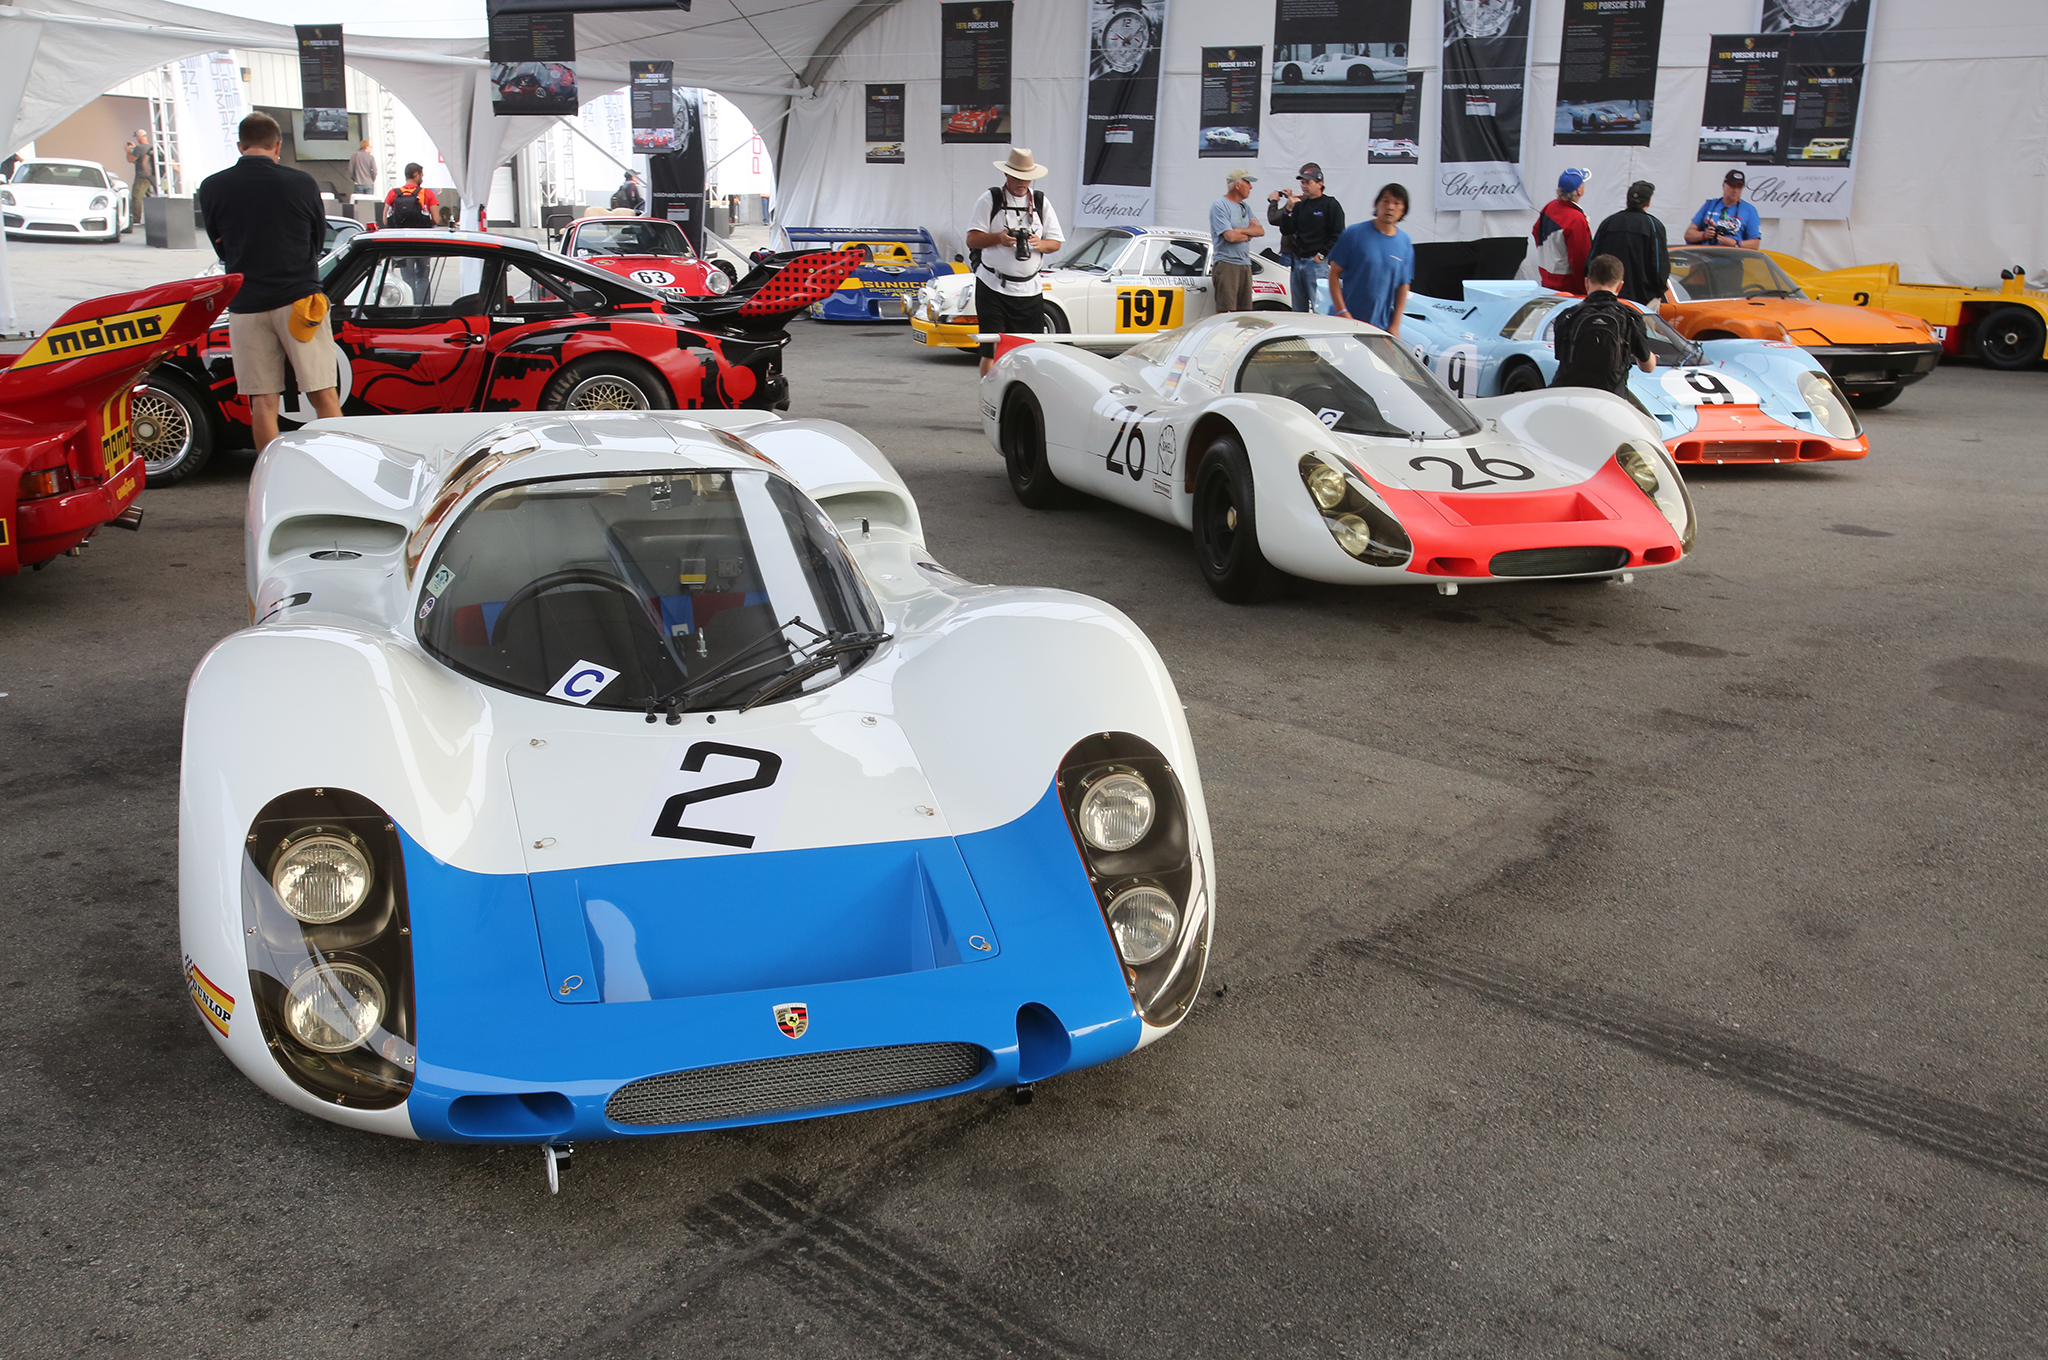 32. Late 1960s Porsches leading to the 917.